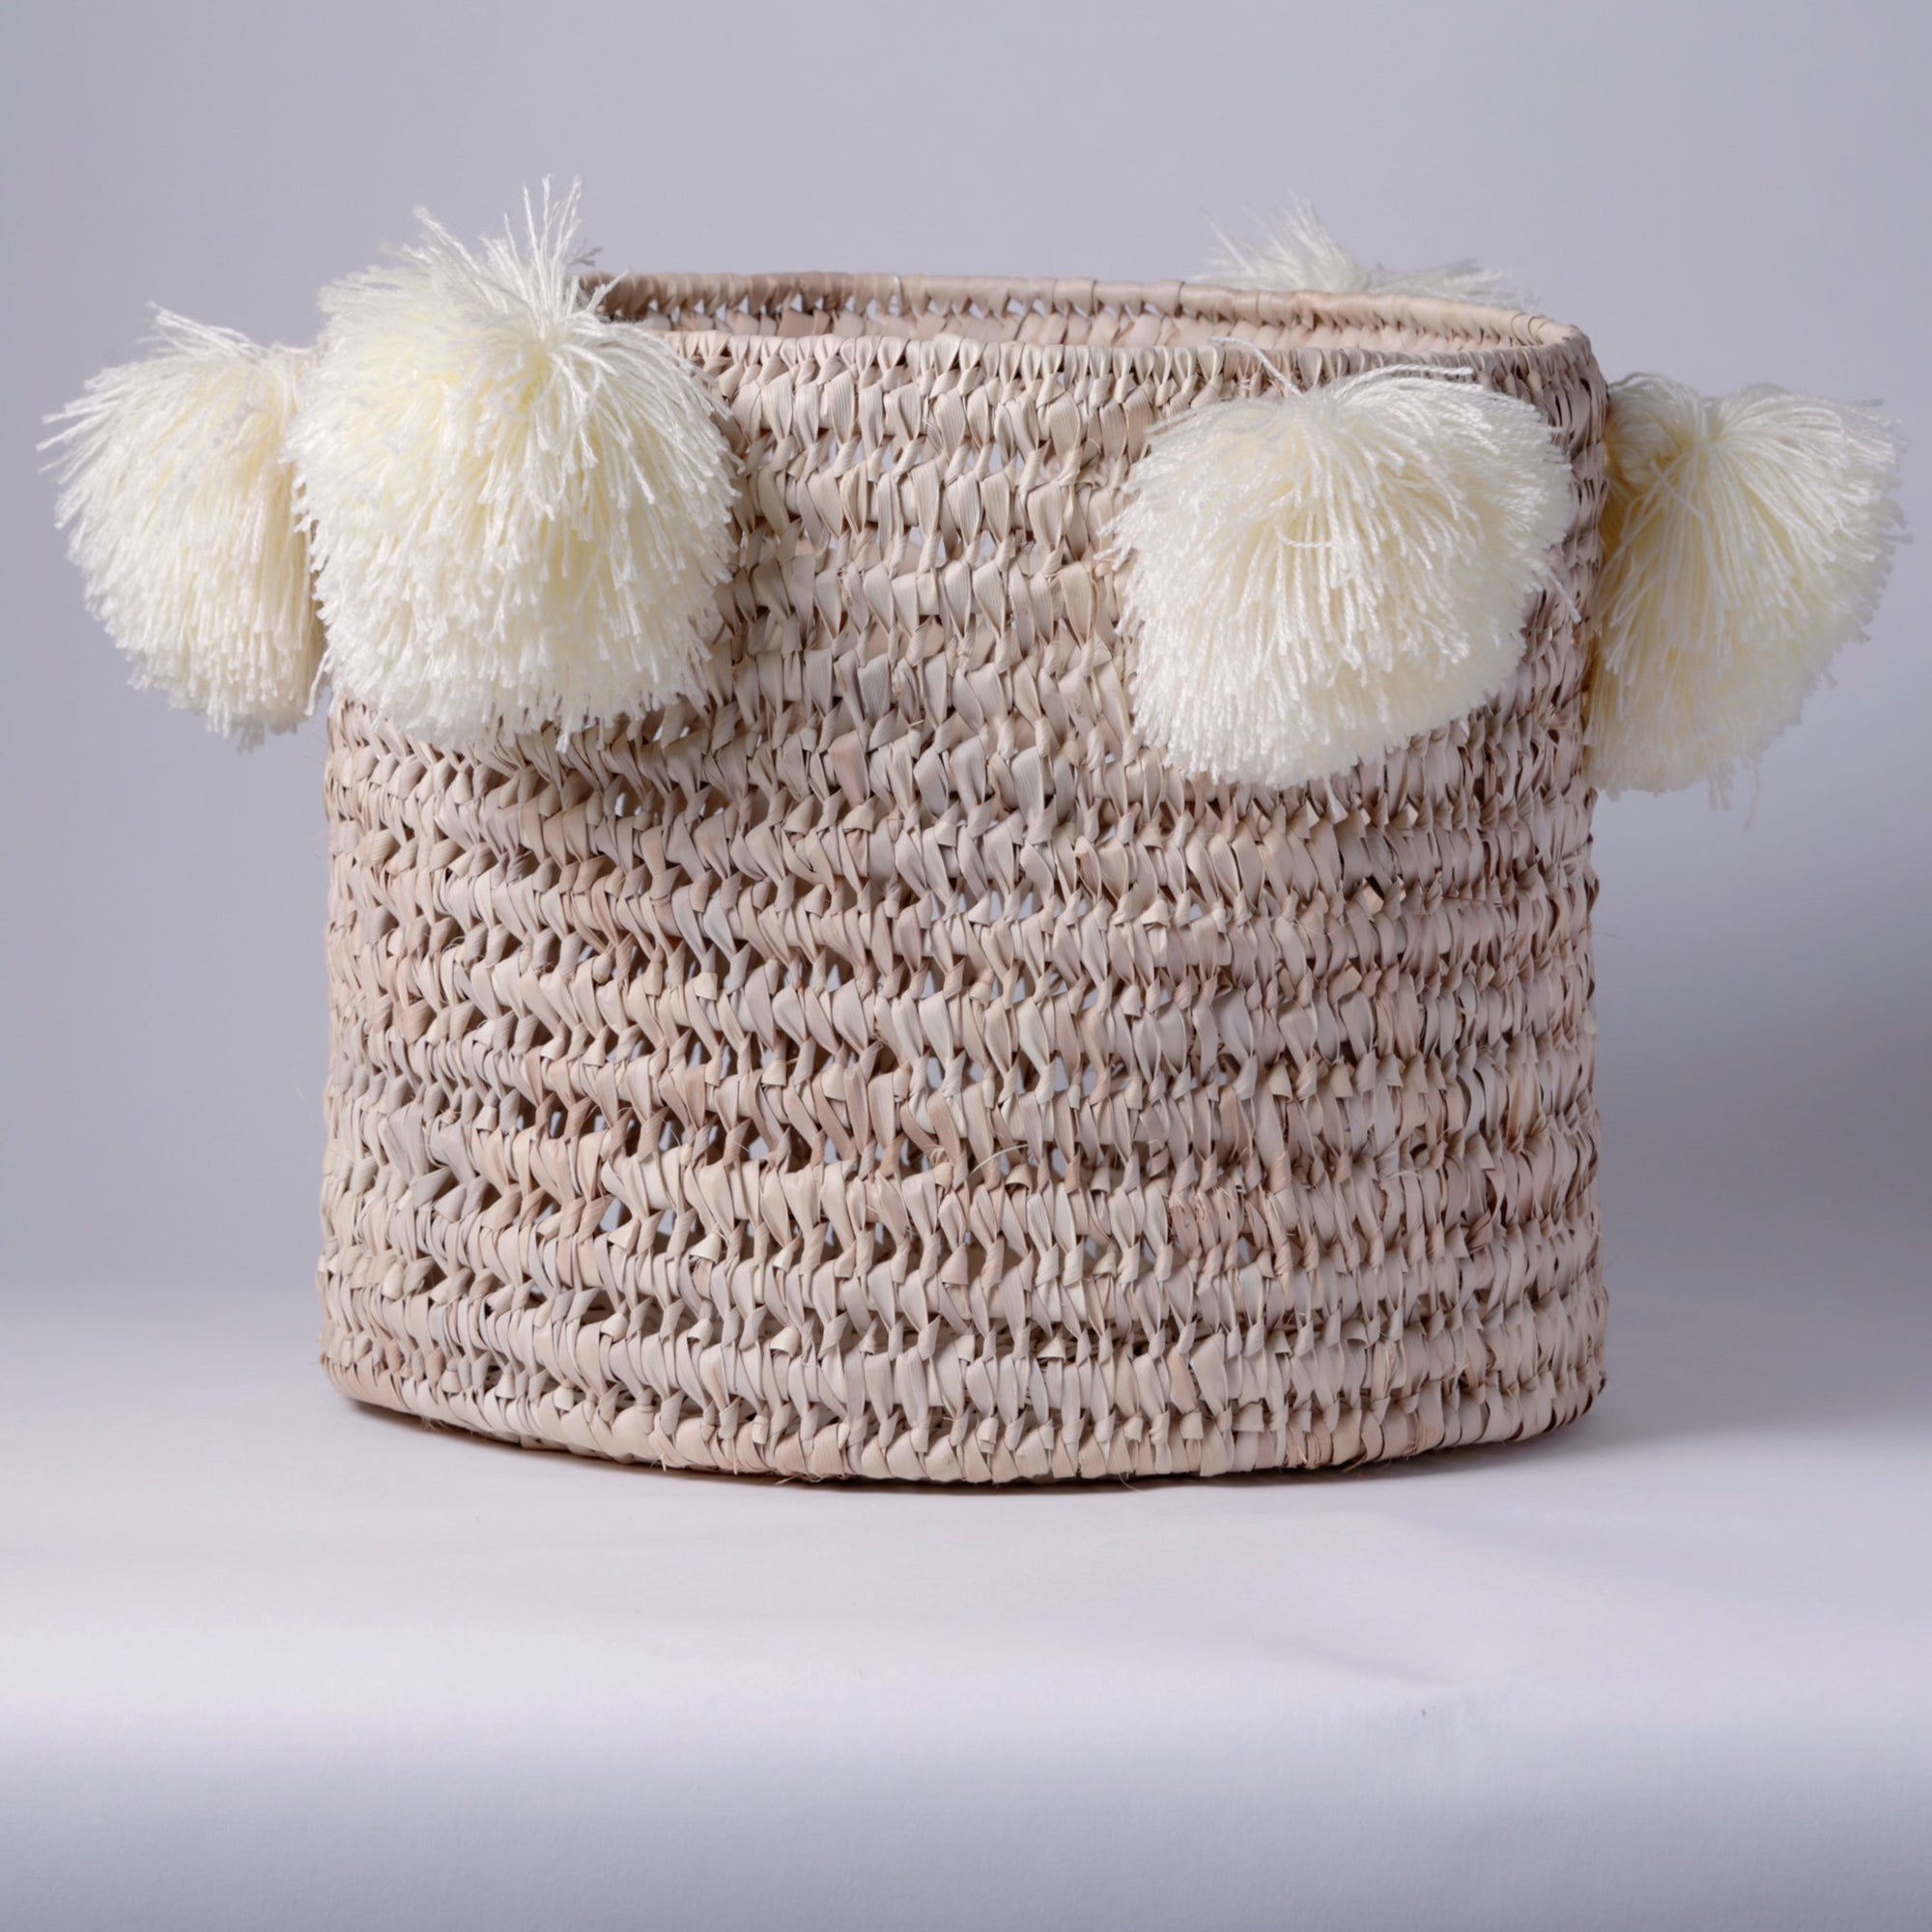 STRAW LAUNDRY BASKET, WHITE POM POM